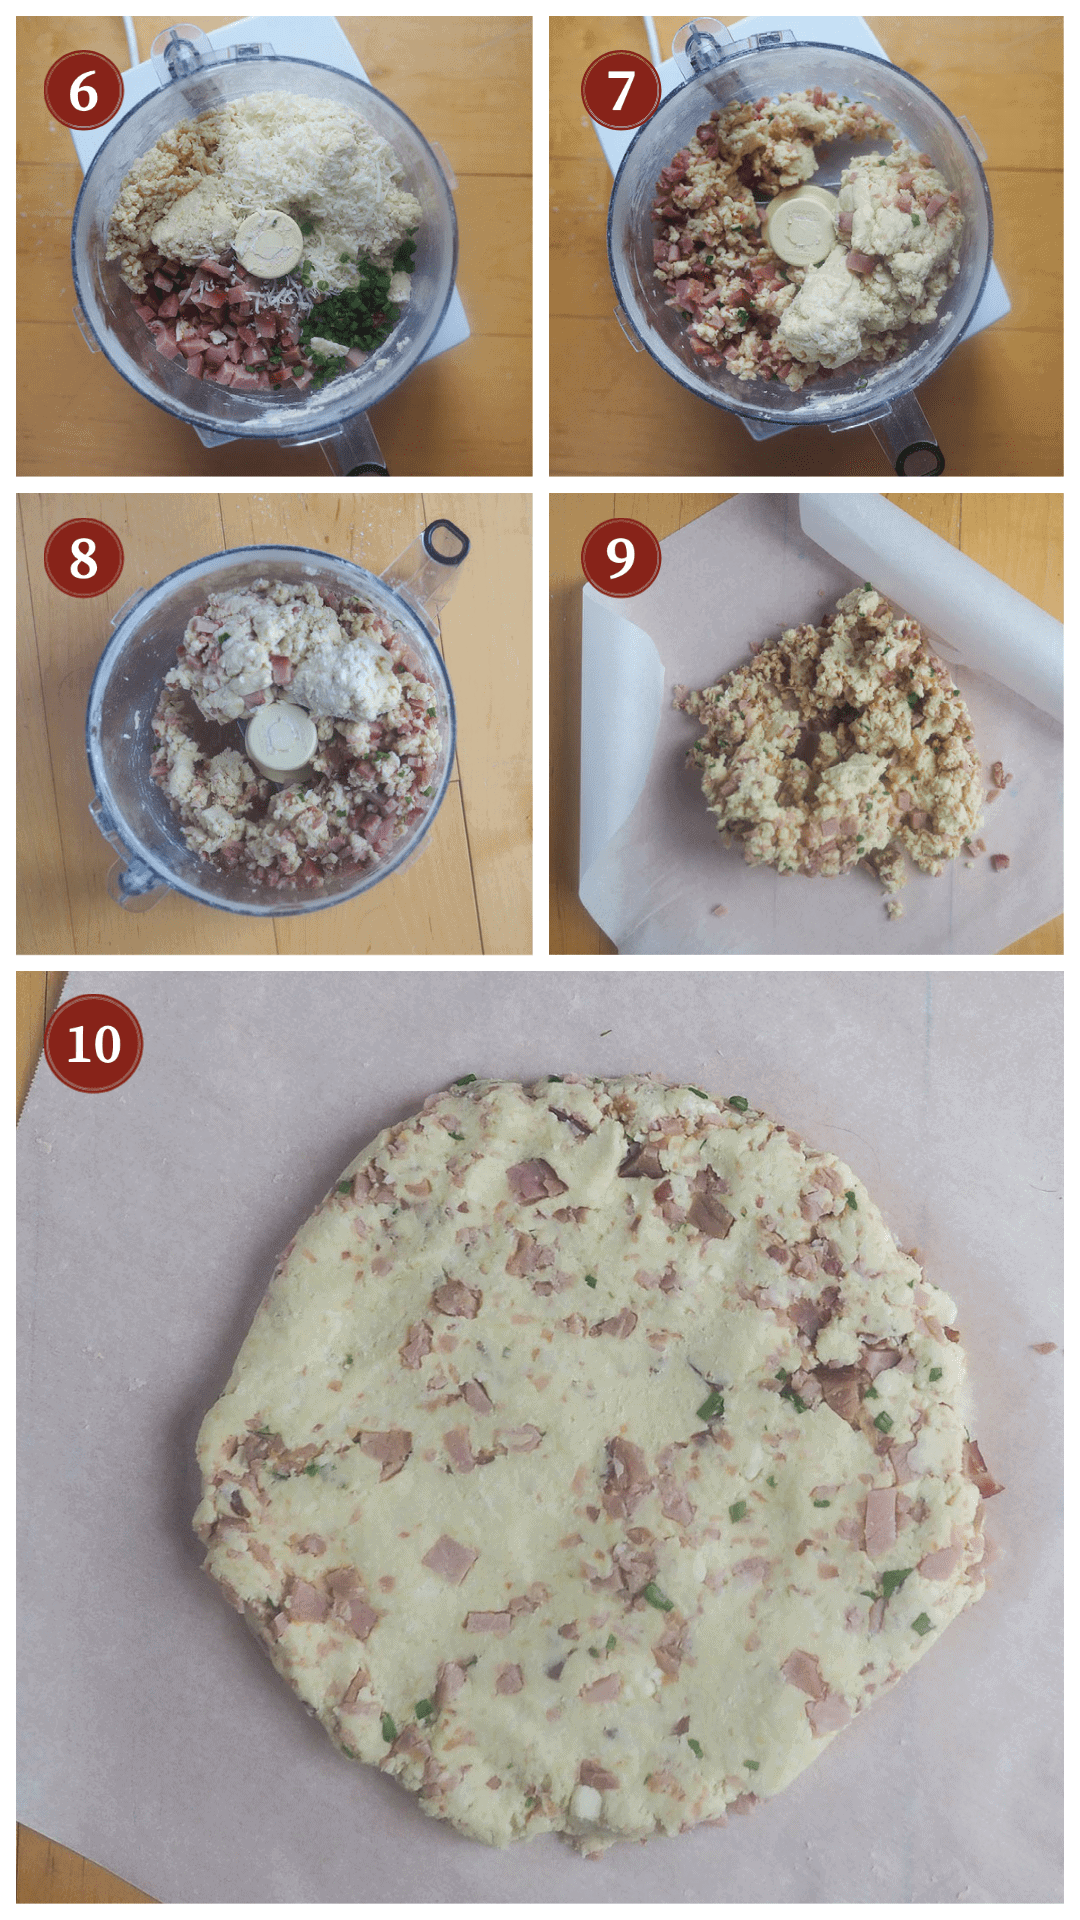 A collage of images showing how to make ham and cheese scones, steps 6 - 10.